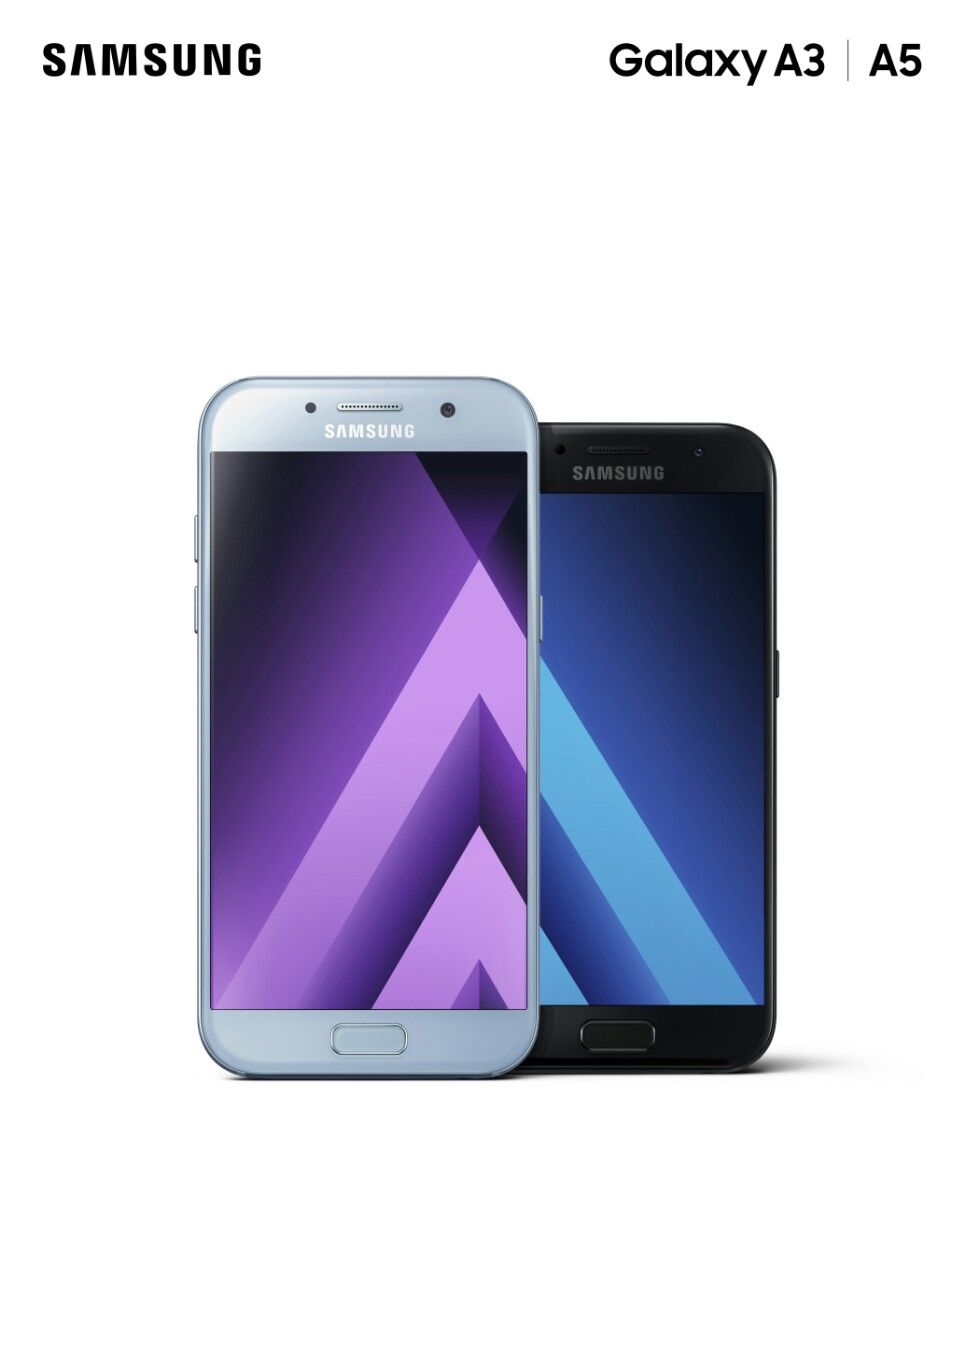 Official 2017 Galaxy A Devices Are Coming To Vodafone Uk Samsung Samsung Galaxy Samsung Galaxy A3